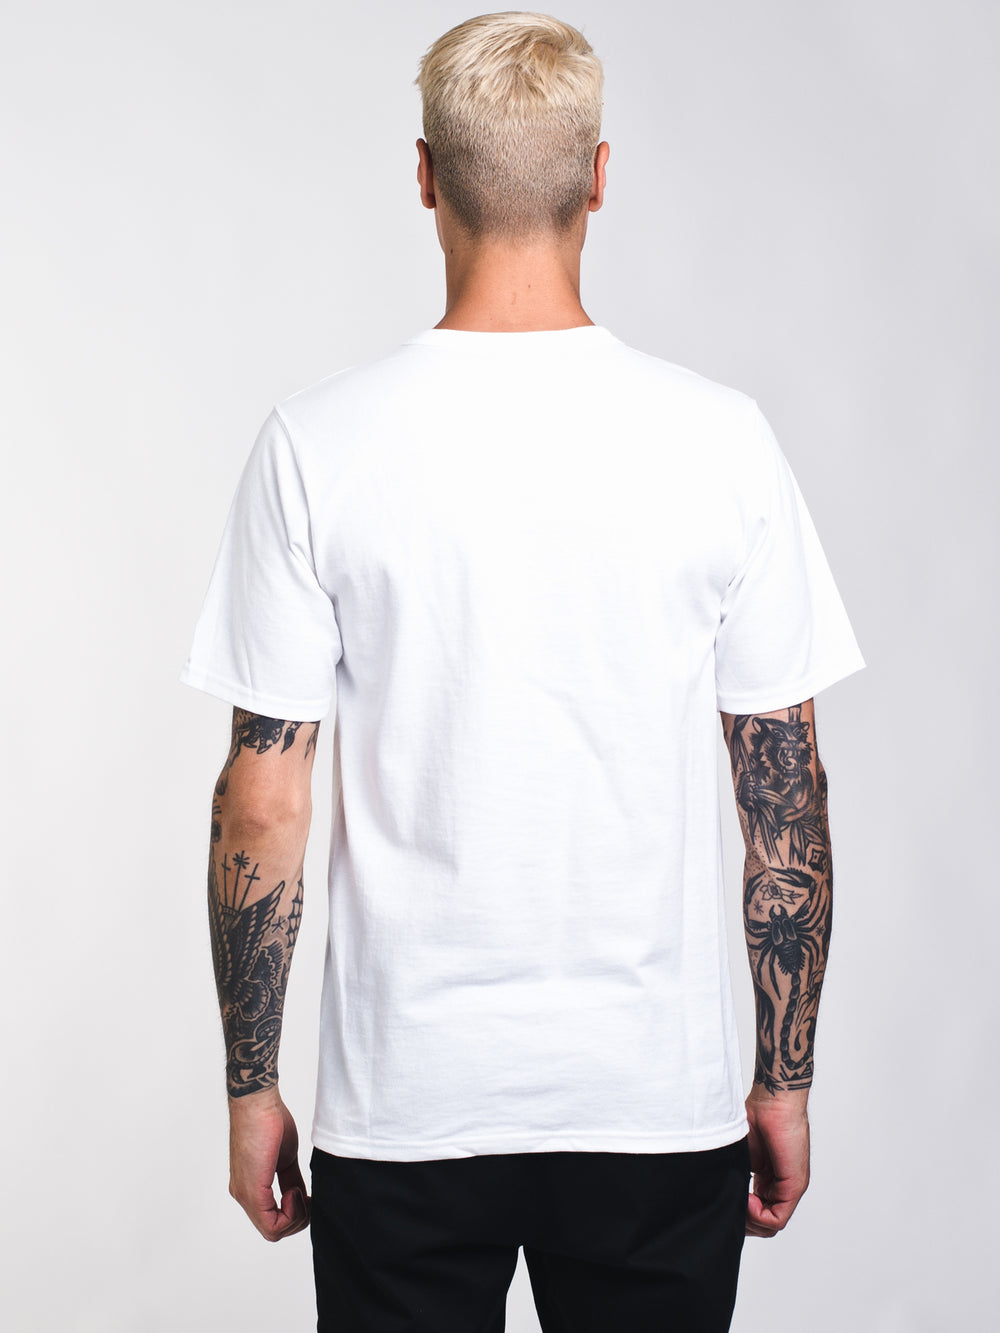 MENS HERITAGE INK SHORT SLEEVE T-SHIRTEE - WHT